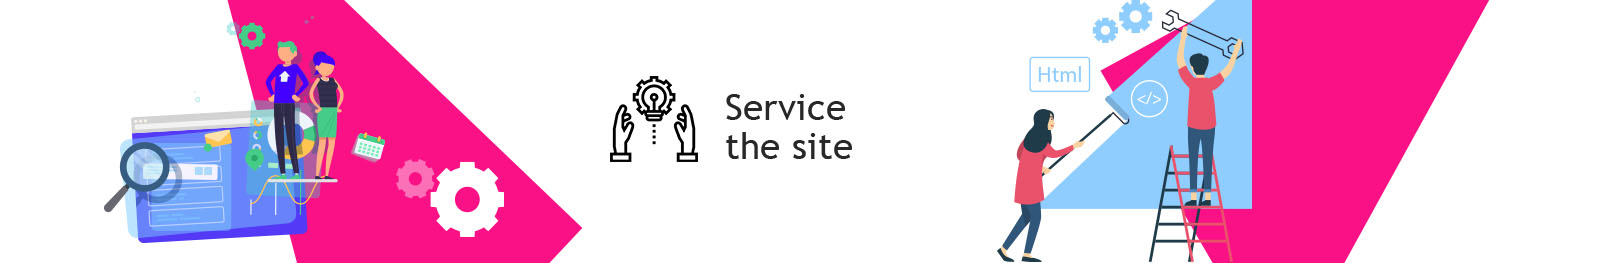 Site maintenance. High-quality service of your site.